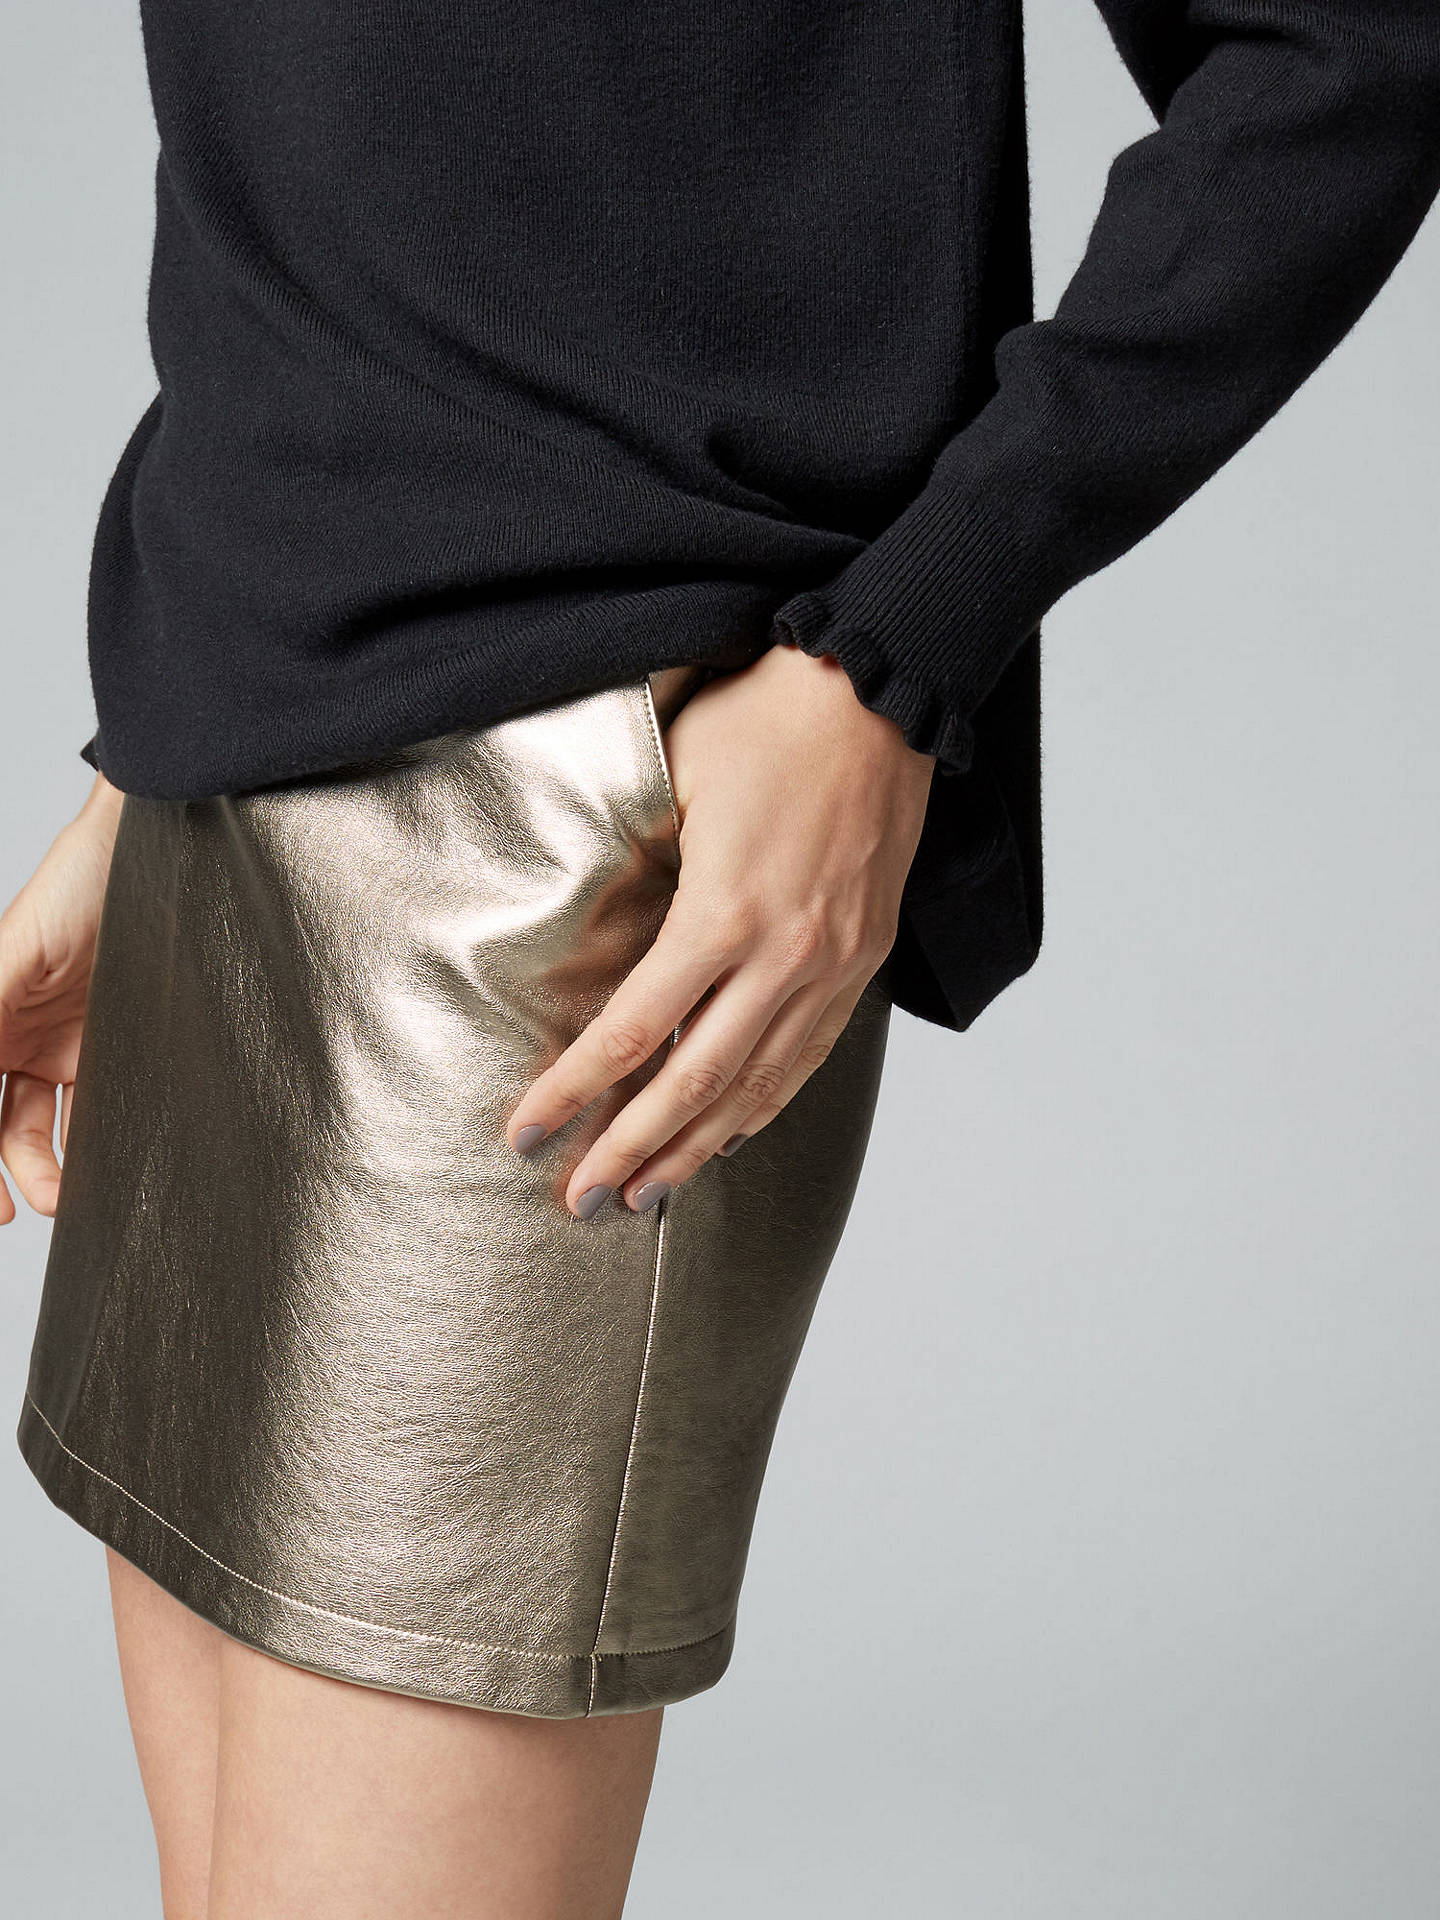 ccb9bb4cb6 ... Buy Warehouse Metallic Faux Leather Skirt, Gold, 6 Online at  johnlewis.com